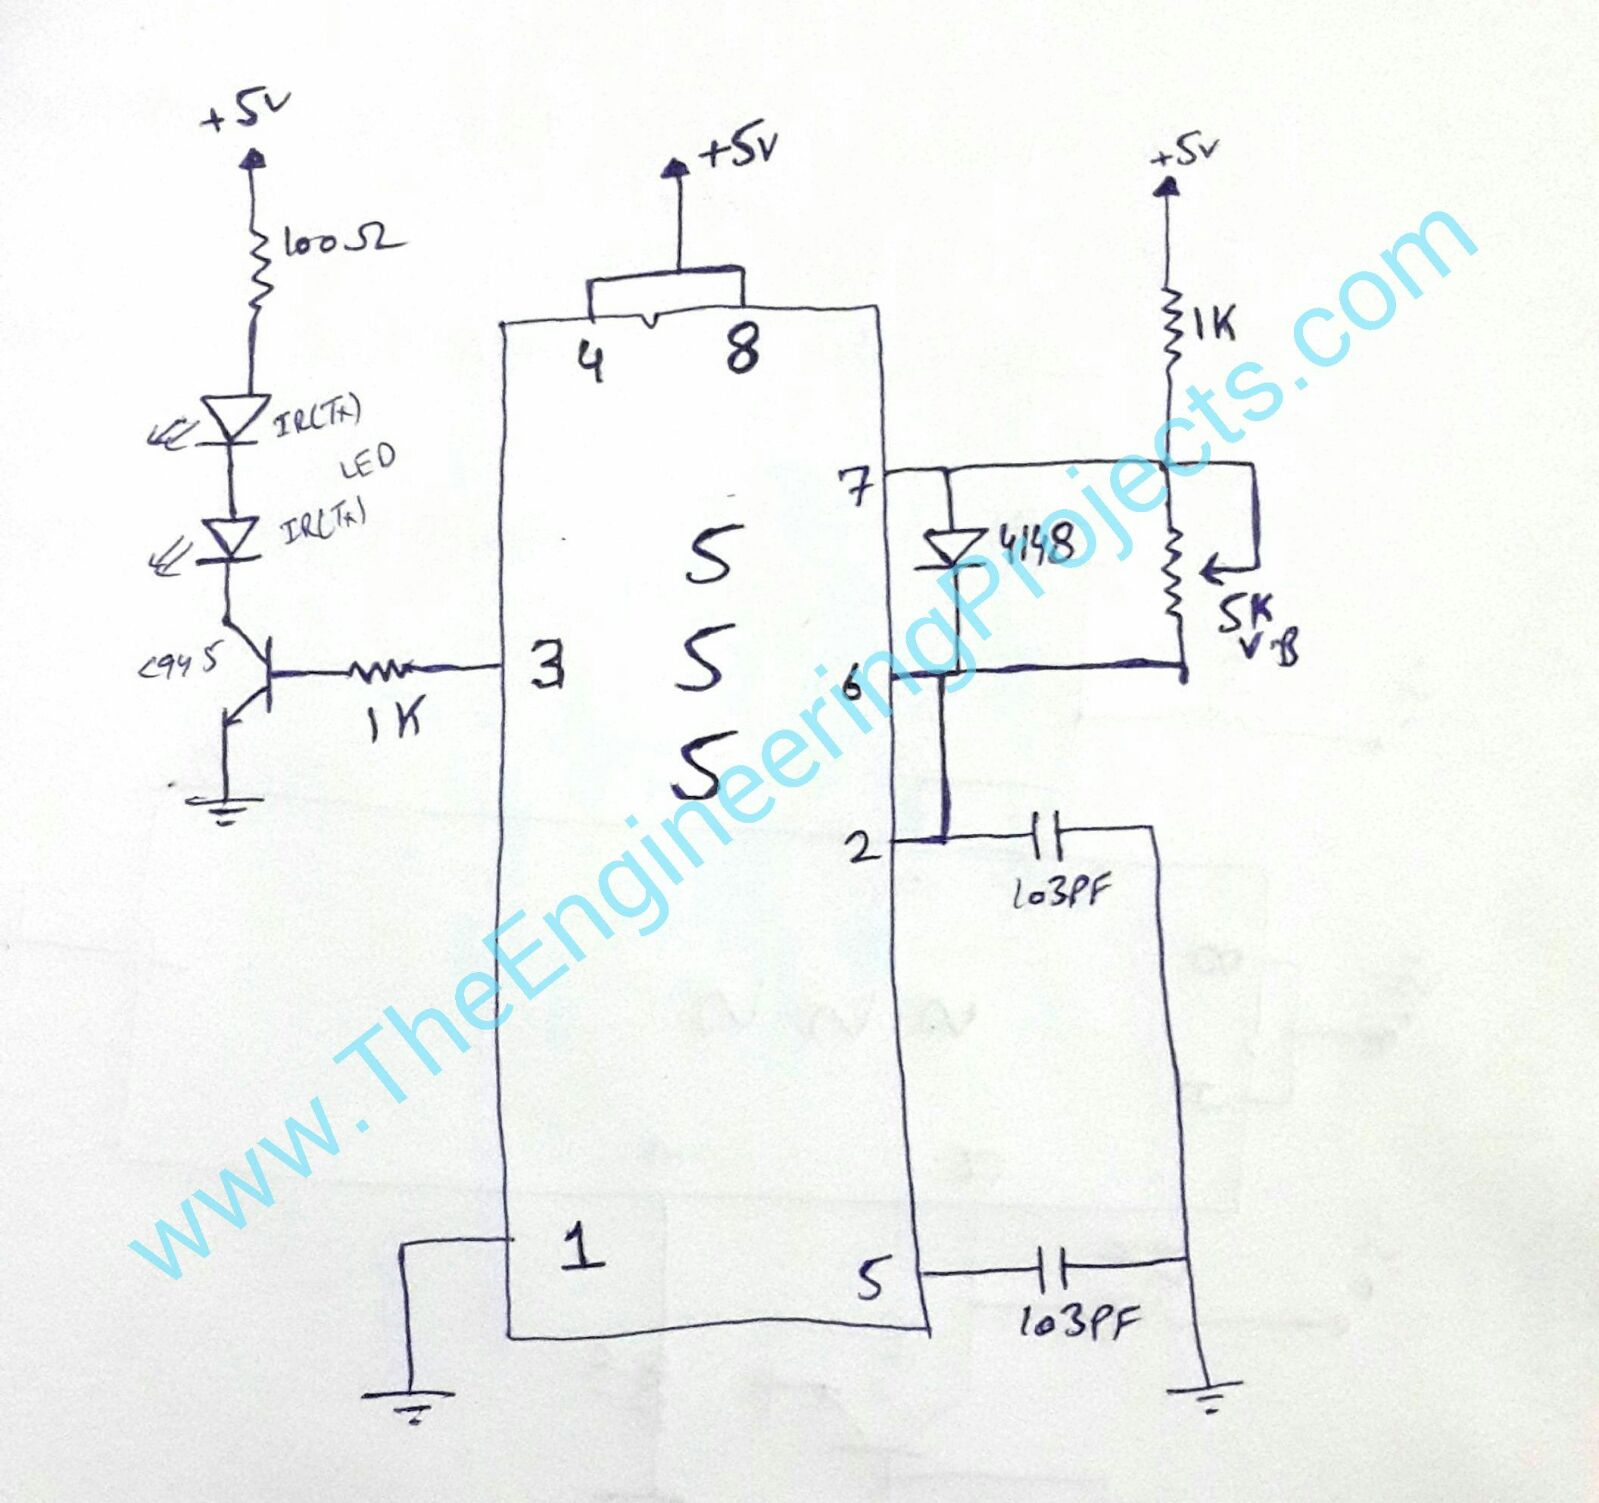 ir sensor circuit diagram using 555